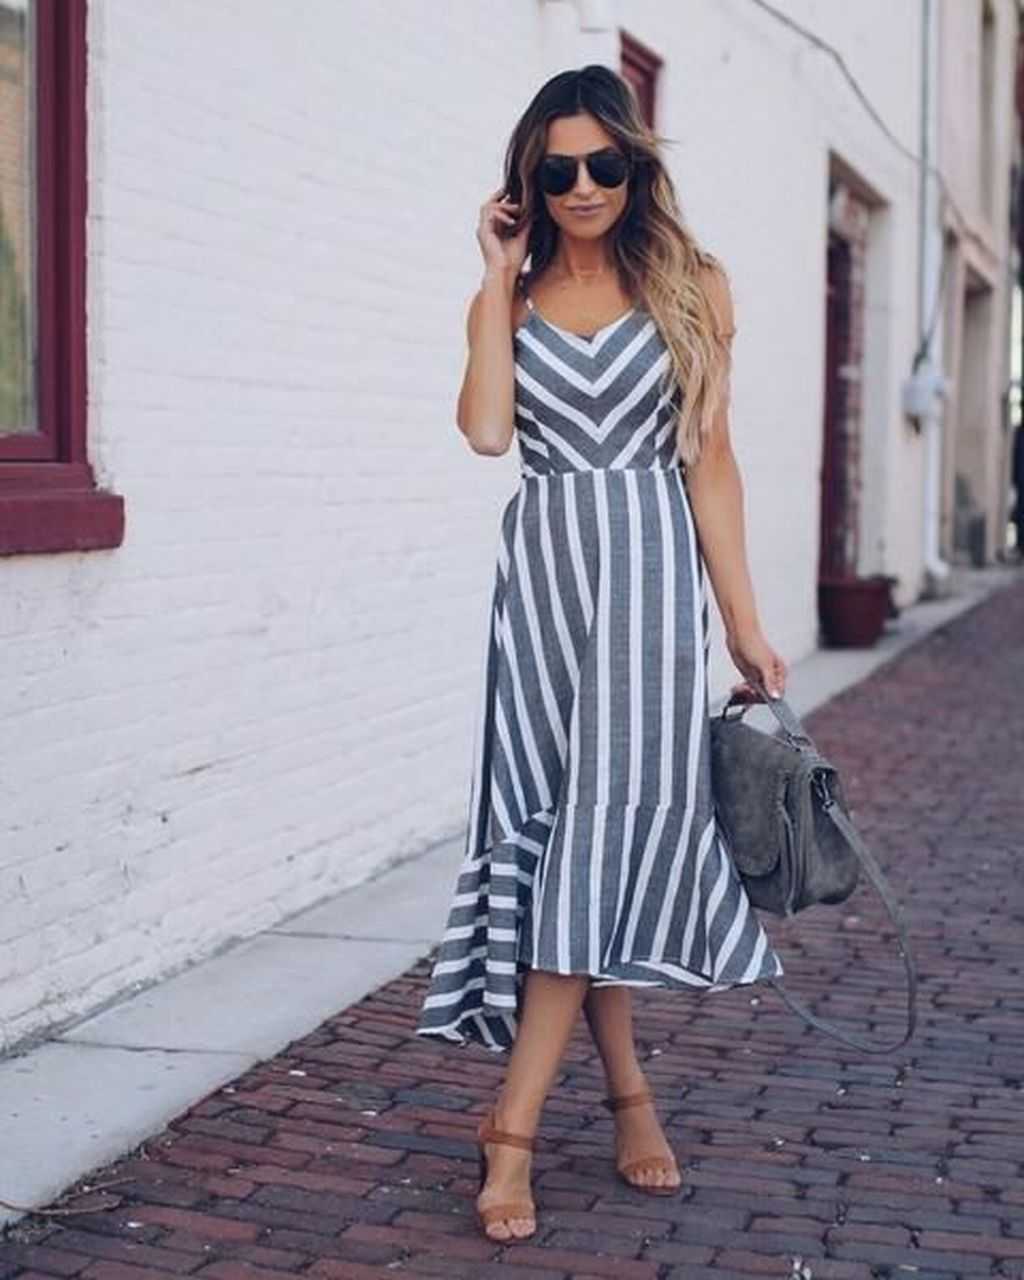 Maxi Cotton Dress Outfit Ideas